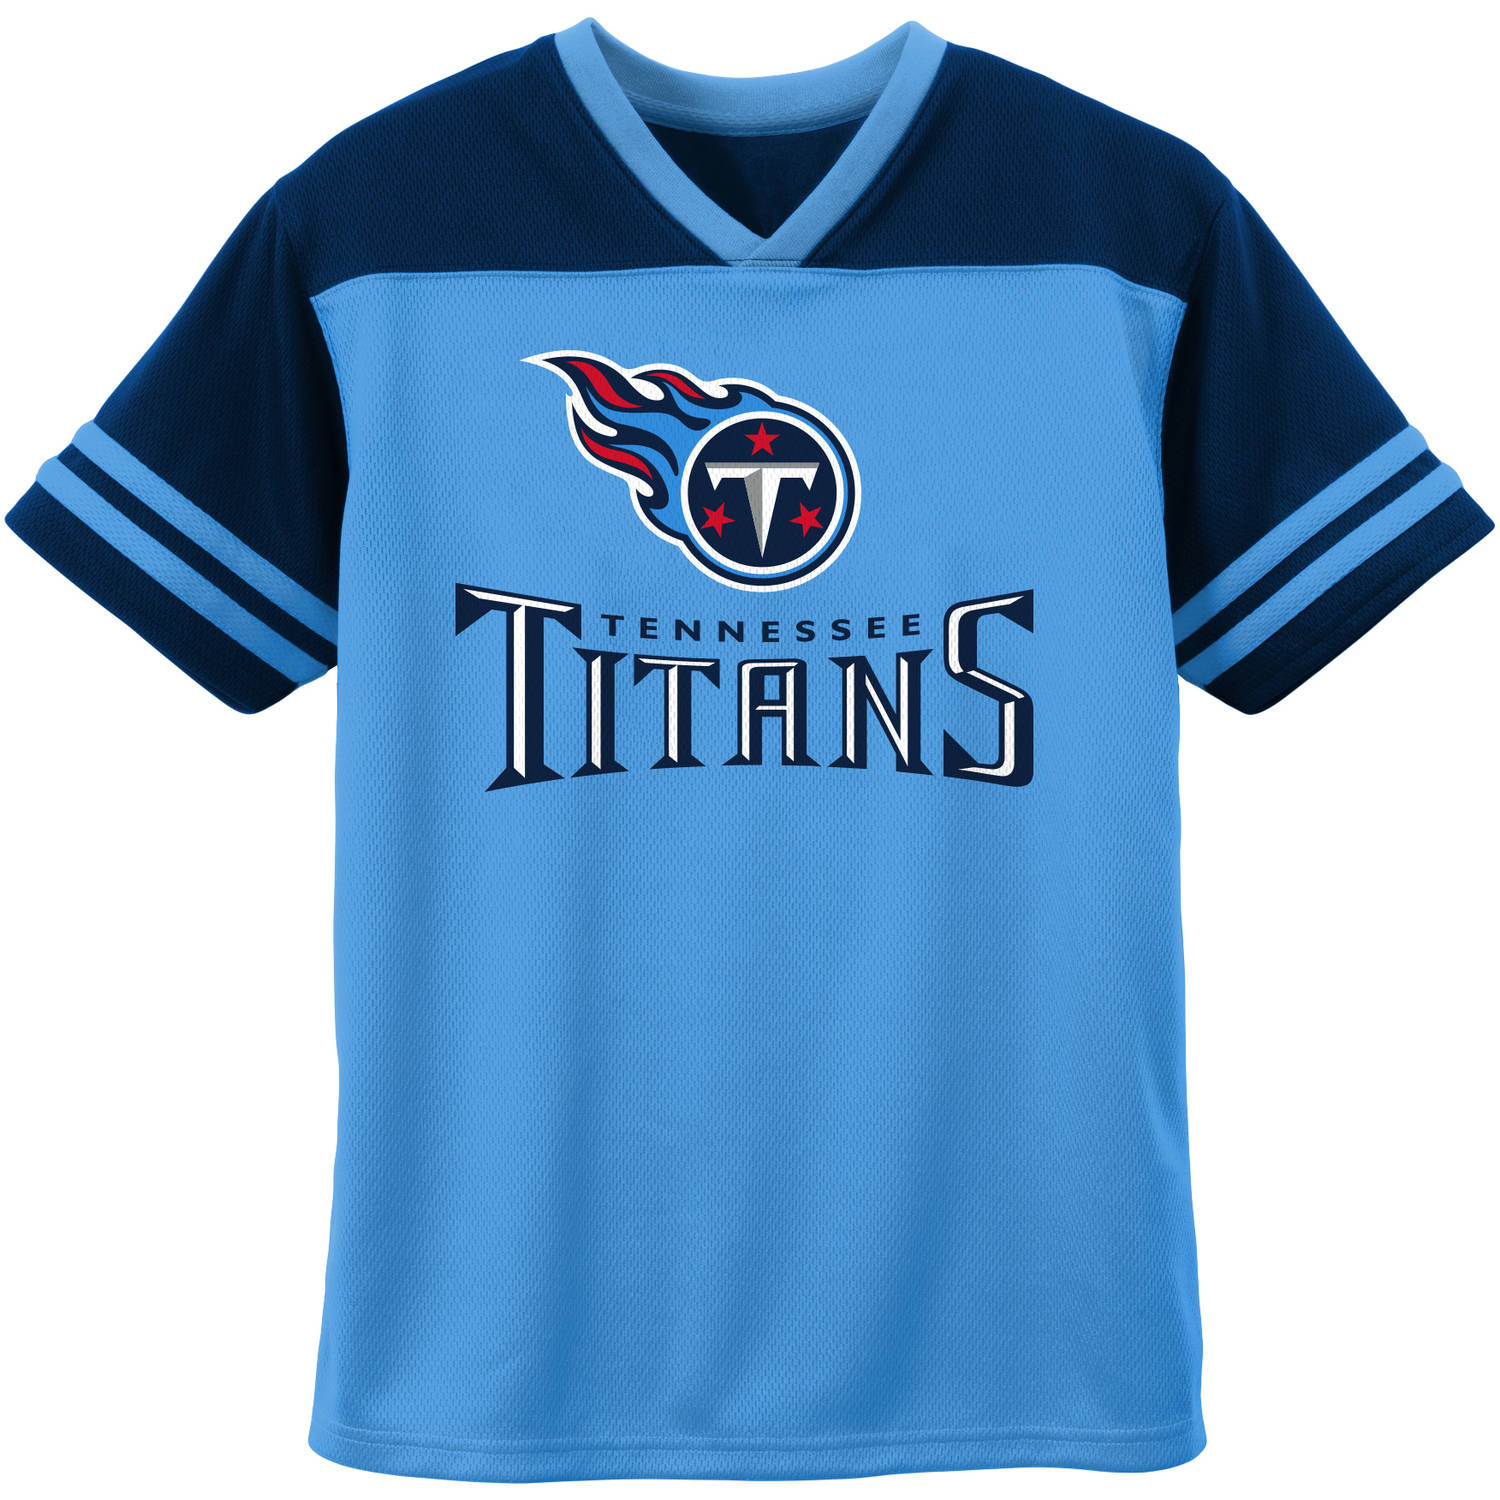 NFL Tennessee Titans Toddler Short Sleeve Fashion Top